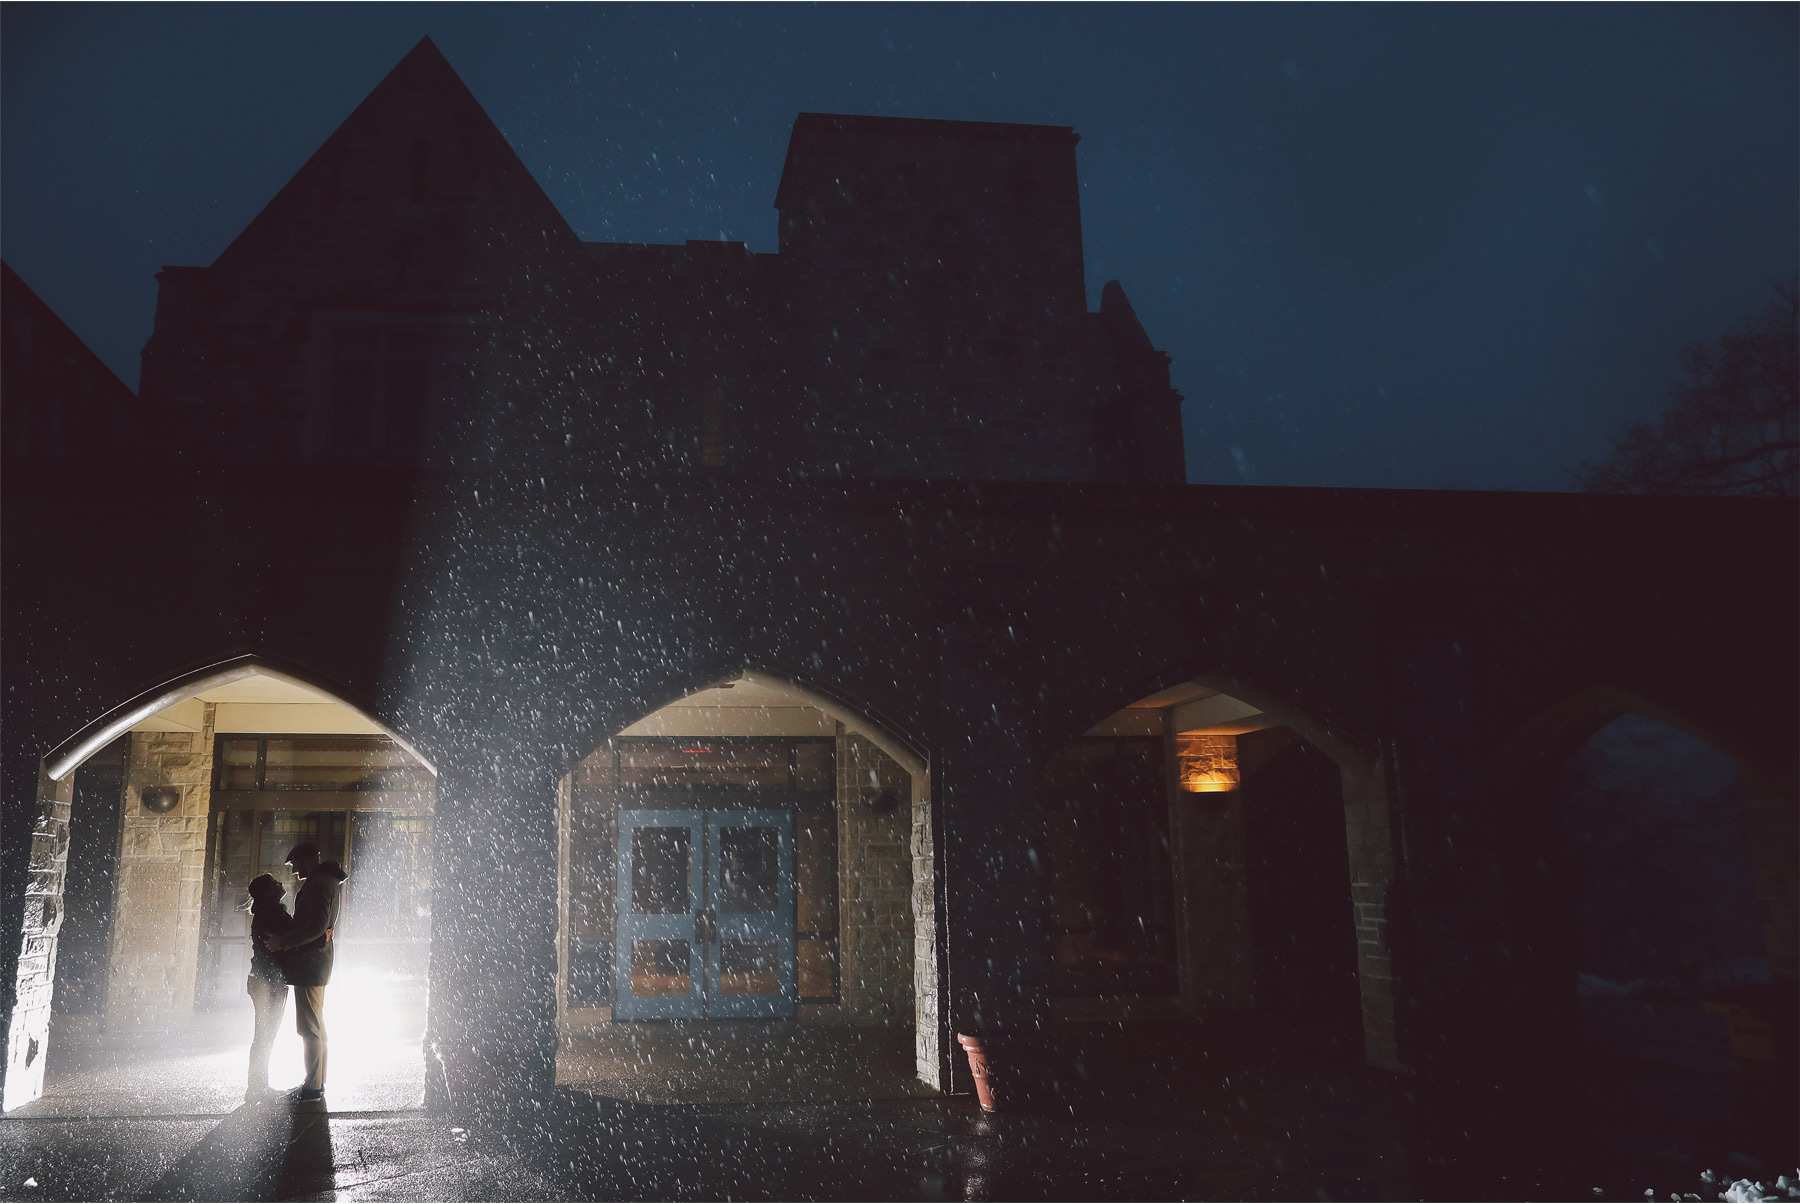 10-Harry-Potter-Themed-Engagement-Session-Minnesota-Wedding-Photography-Andrew-Vick-Night-Rain-Elena-and-Doug.jpg